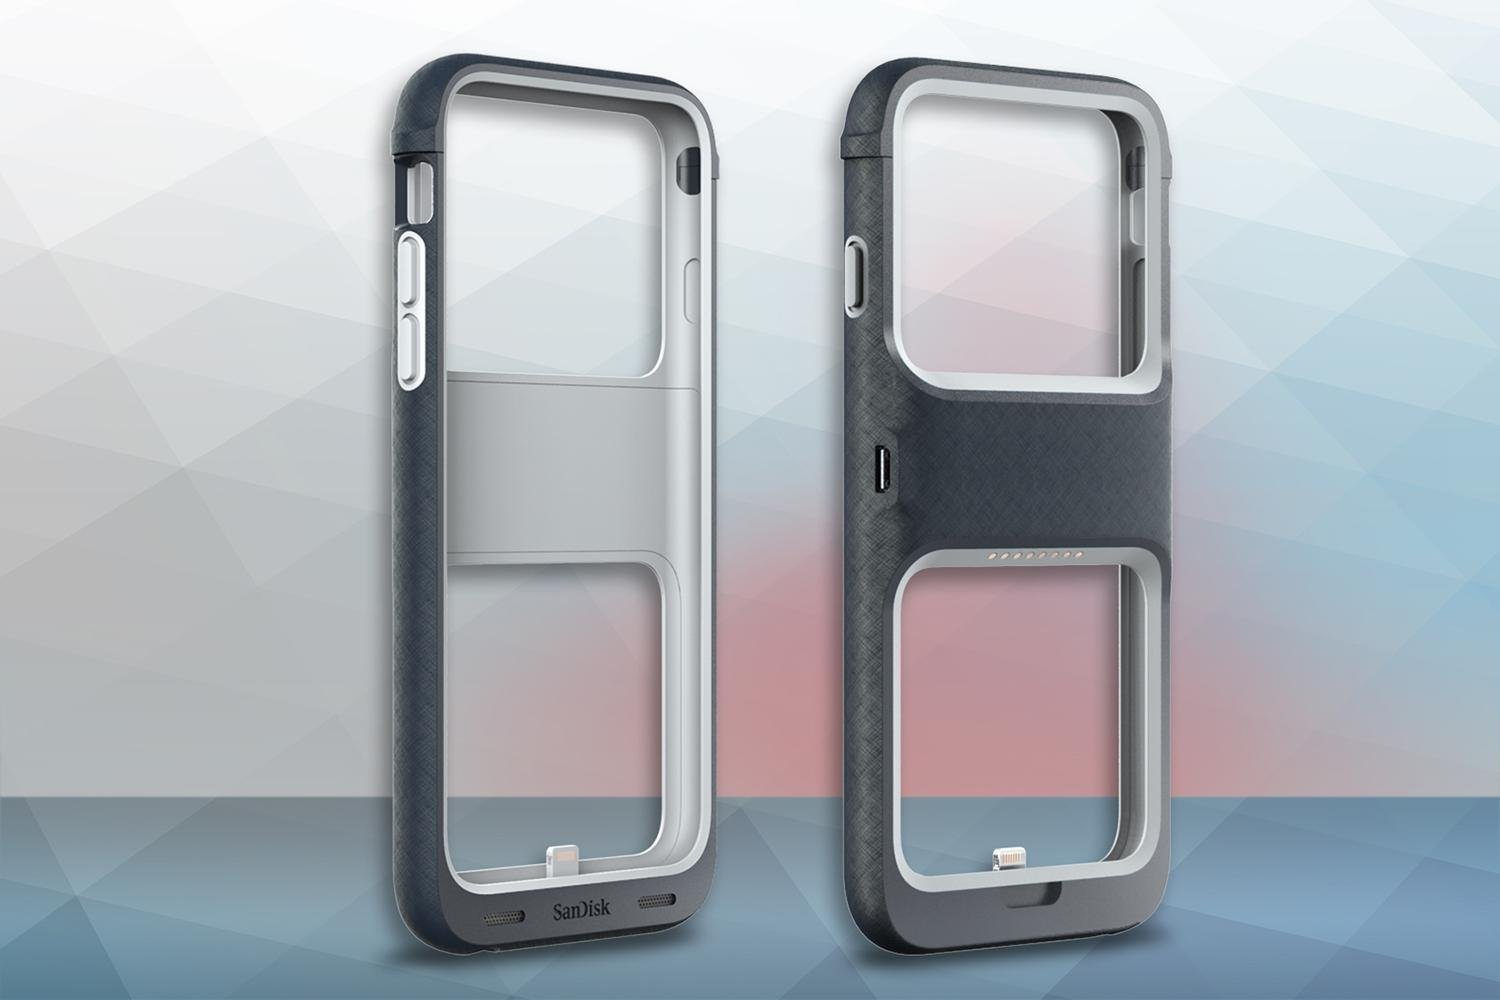 SanDisk Releases 128GB iPhone Storage Case